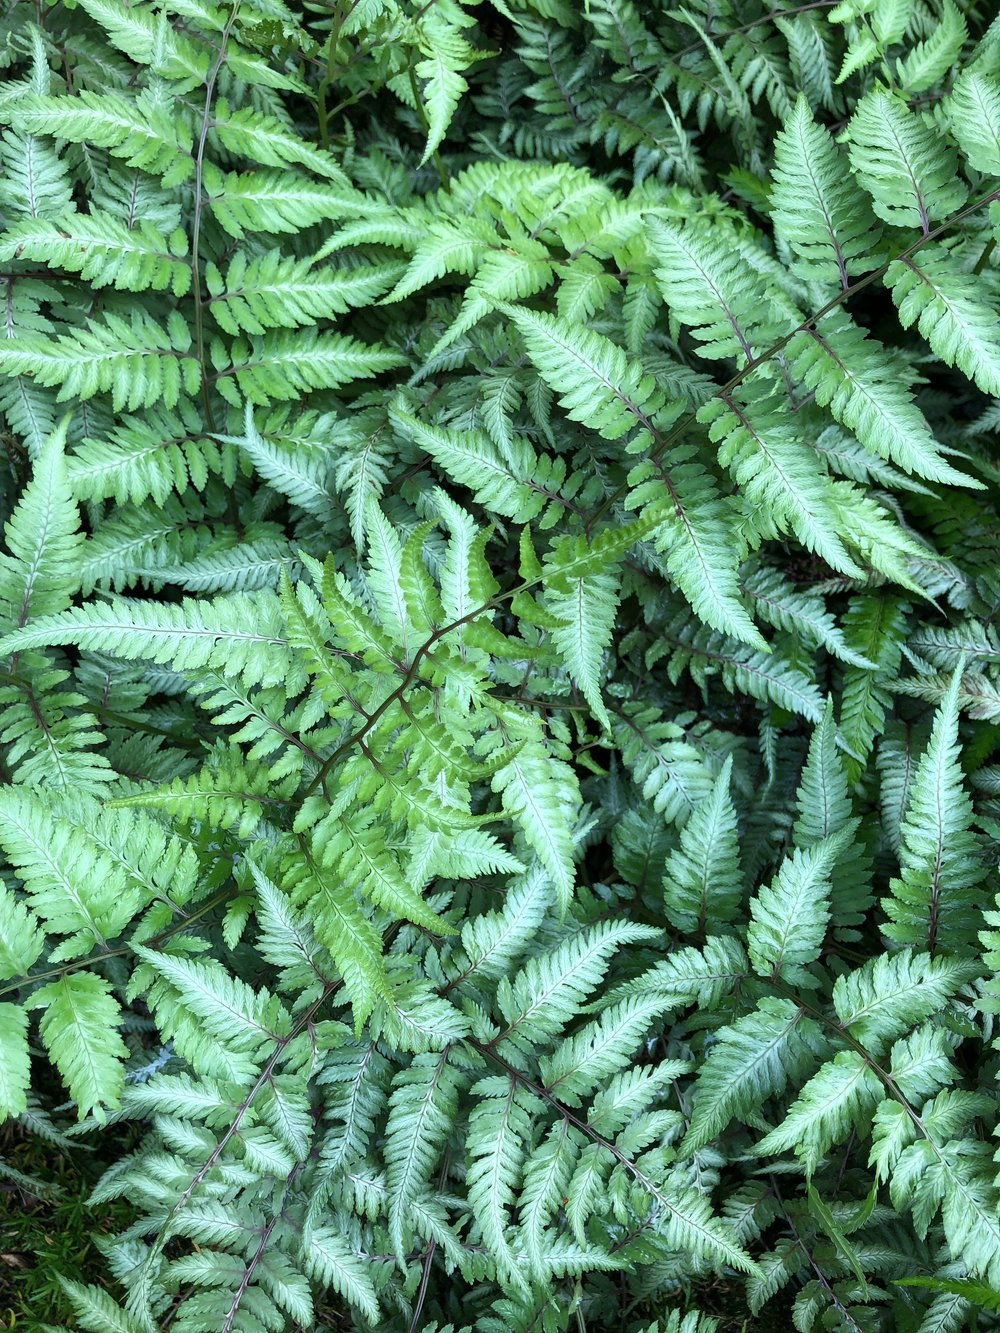 Look at the pattern and different shades of green on these ferns.